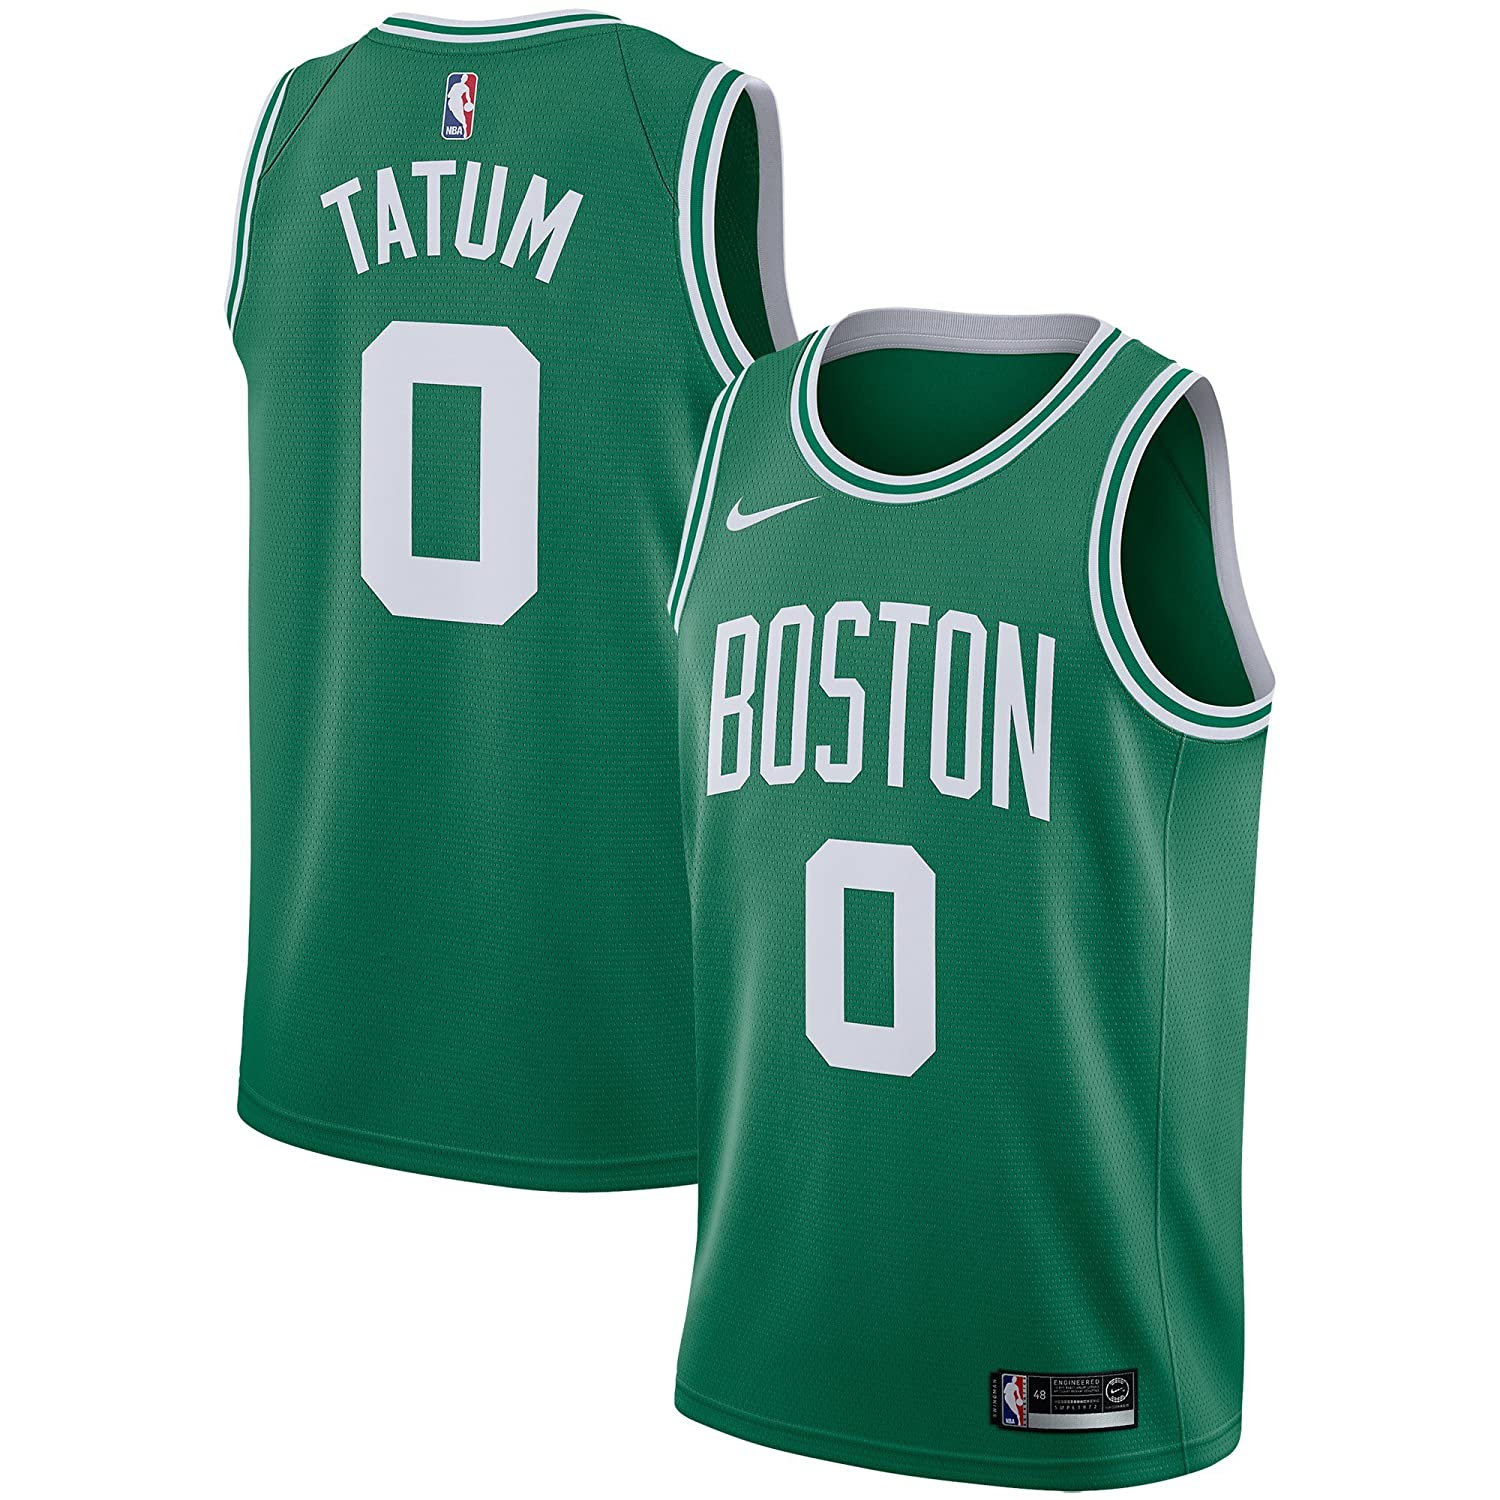 Amazon.com   NIKE Jayson Tatum Boston Celtics Kelly Green Swingman Icon  Edition Jersey - Men s Small   Sports   Outdoors 6aa32a06a